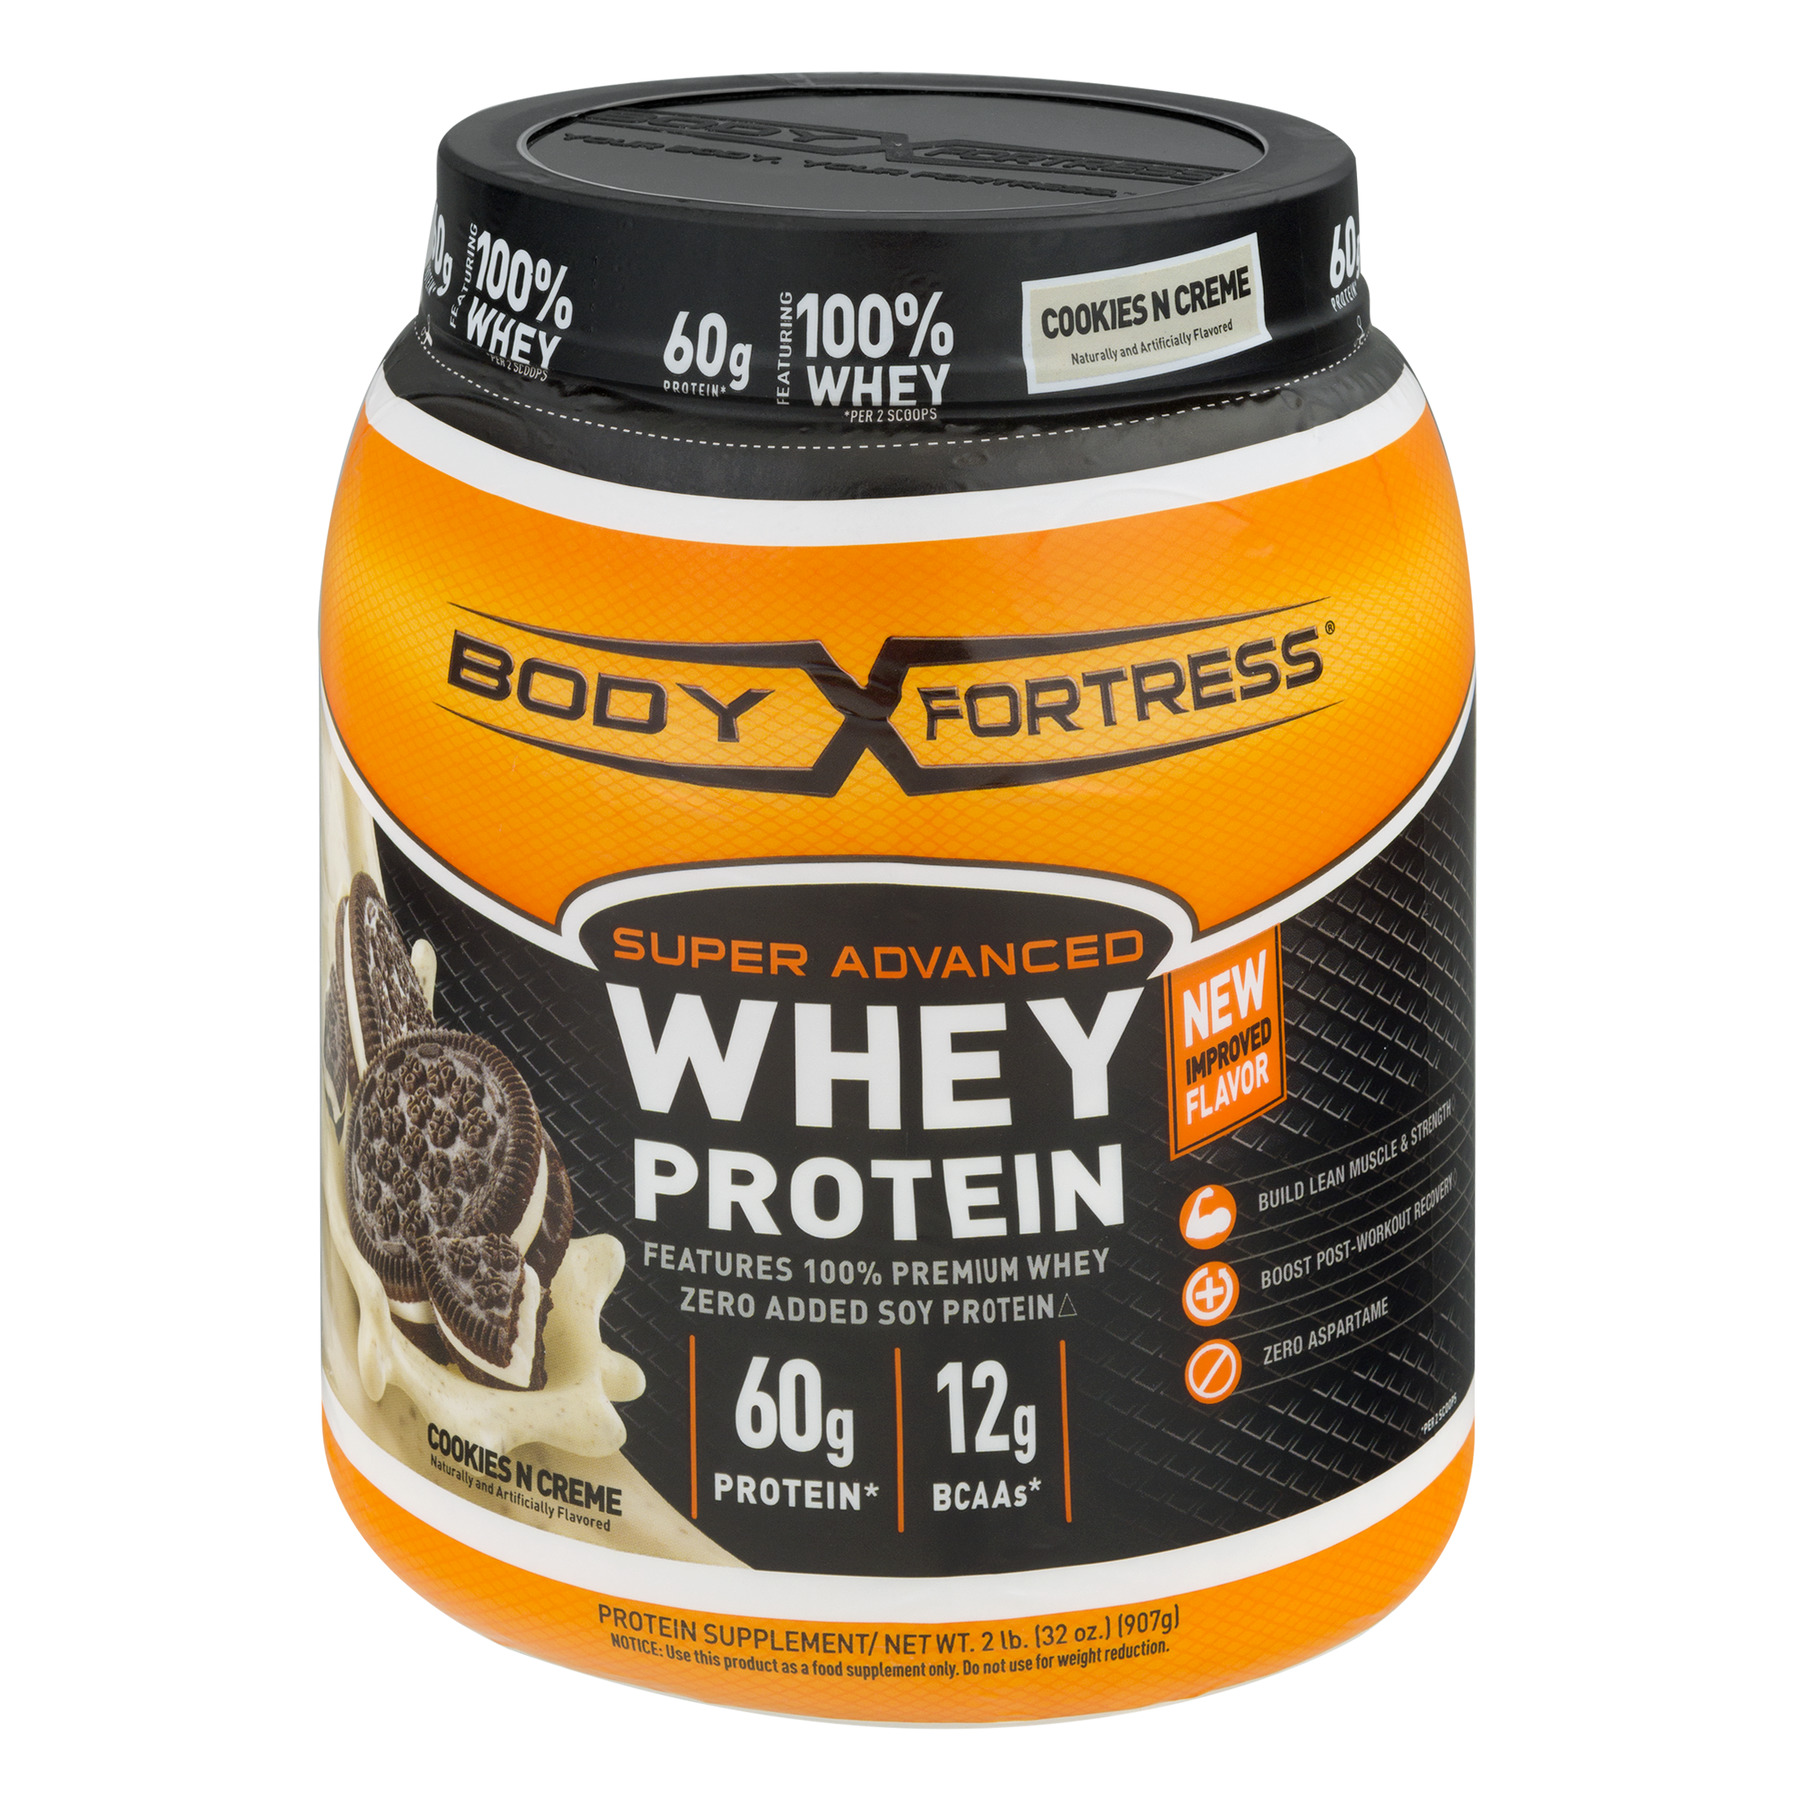 Body Fortress Super Advanced Whey Protein Powder, Cookies N' Creme, 60g Protein, 2 Lb